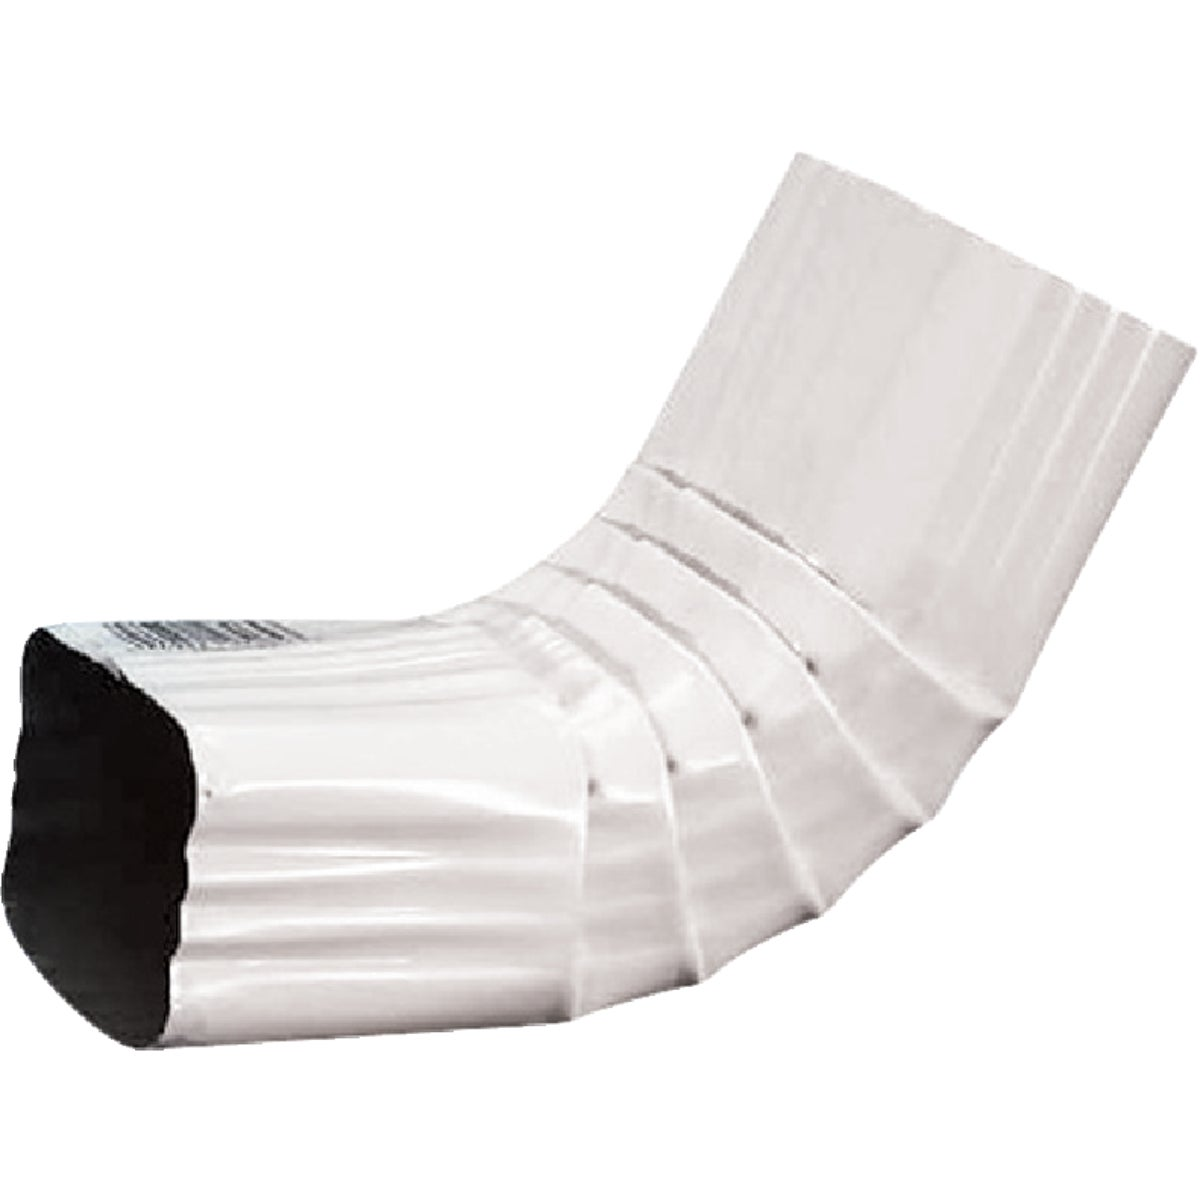 2X3 WHT A-ELBOW - 27064 by Amerimax Home Prod